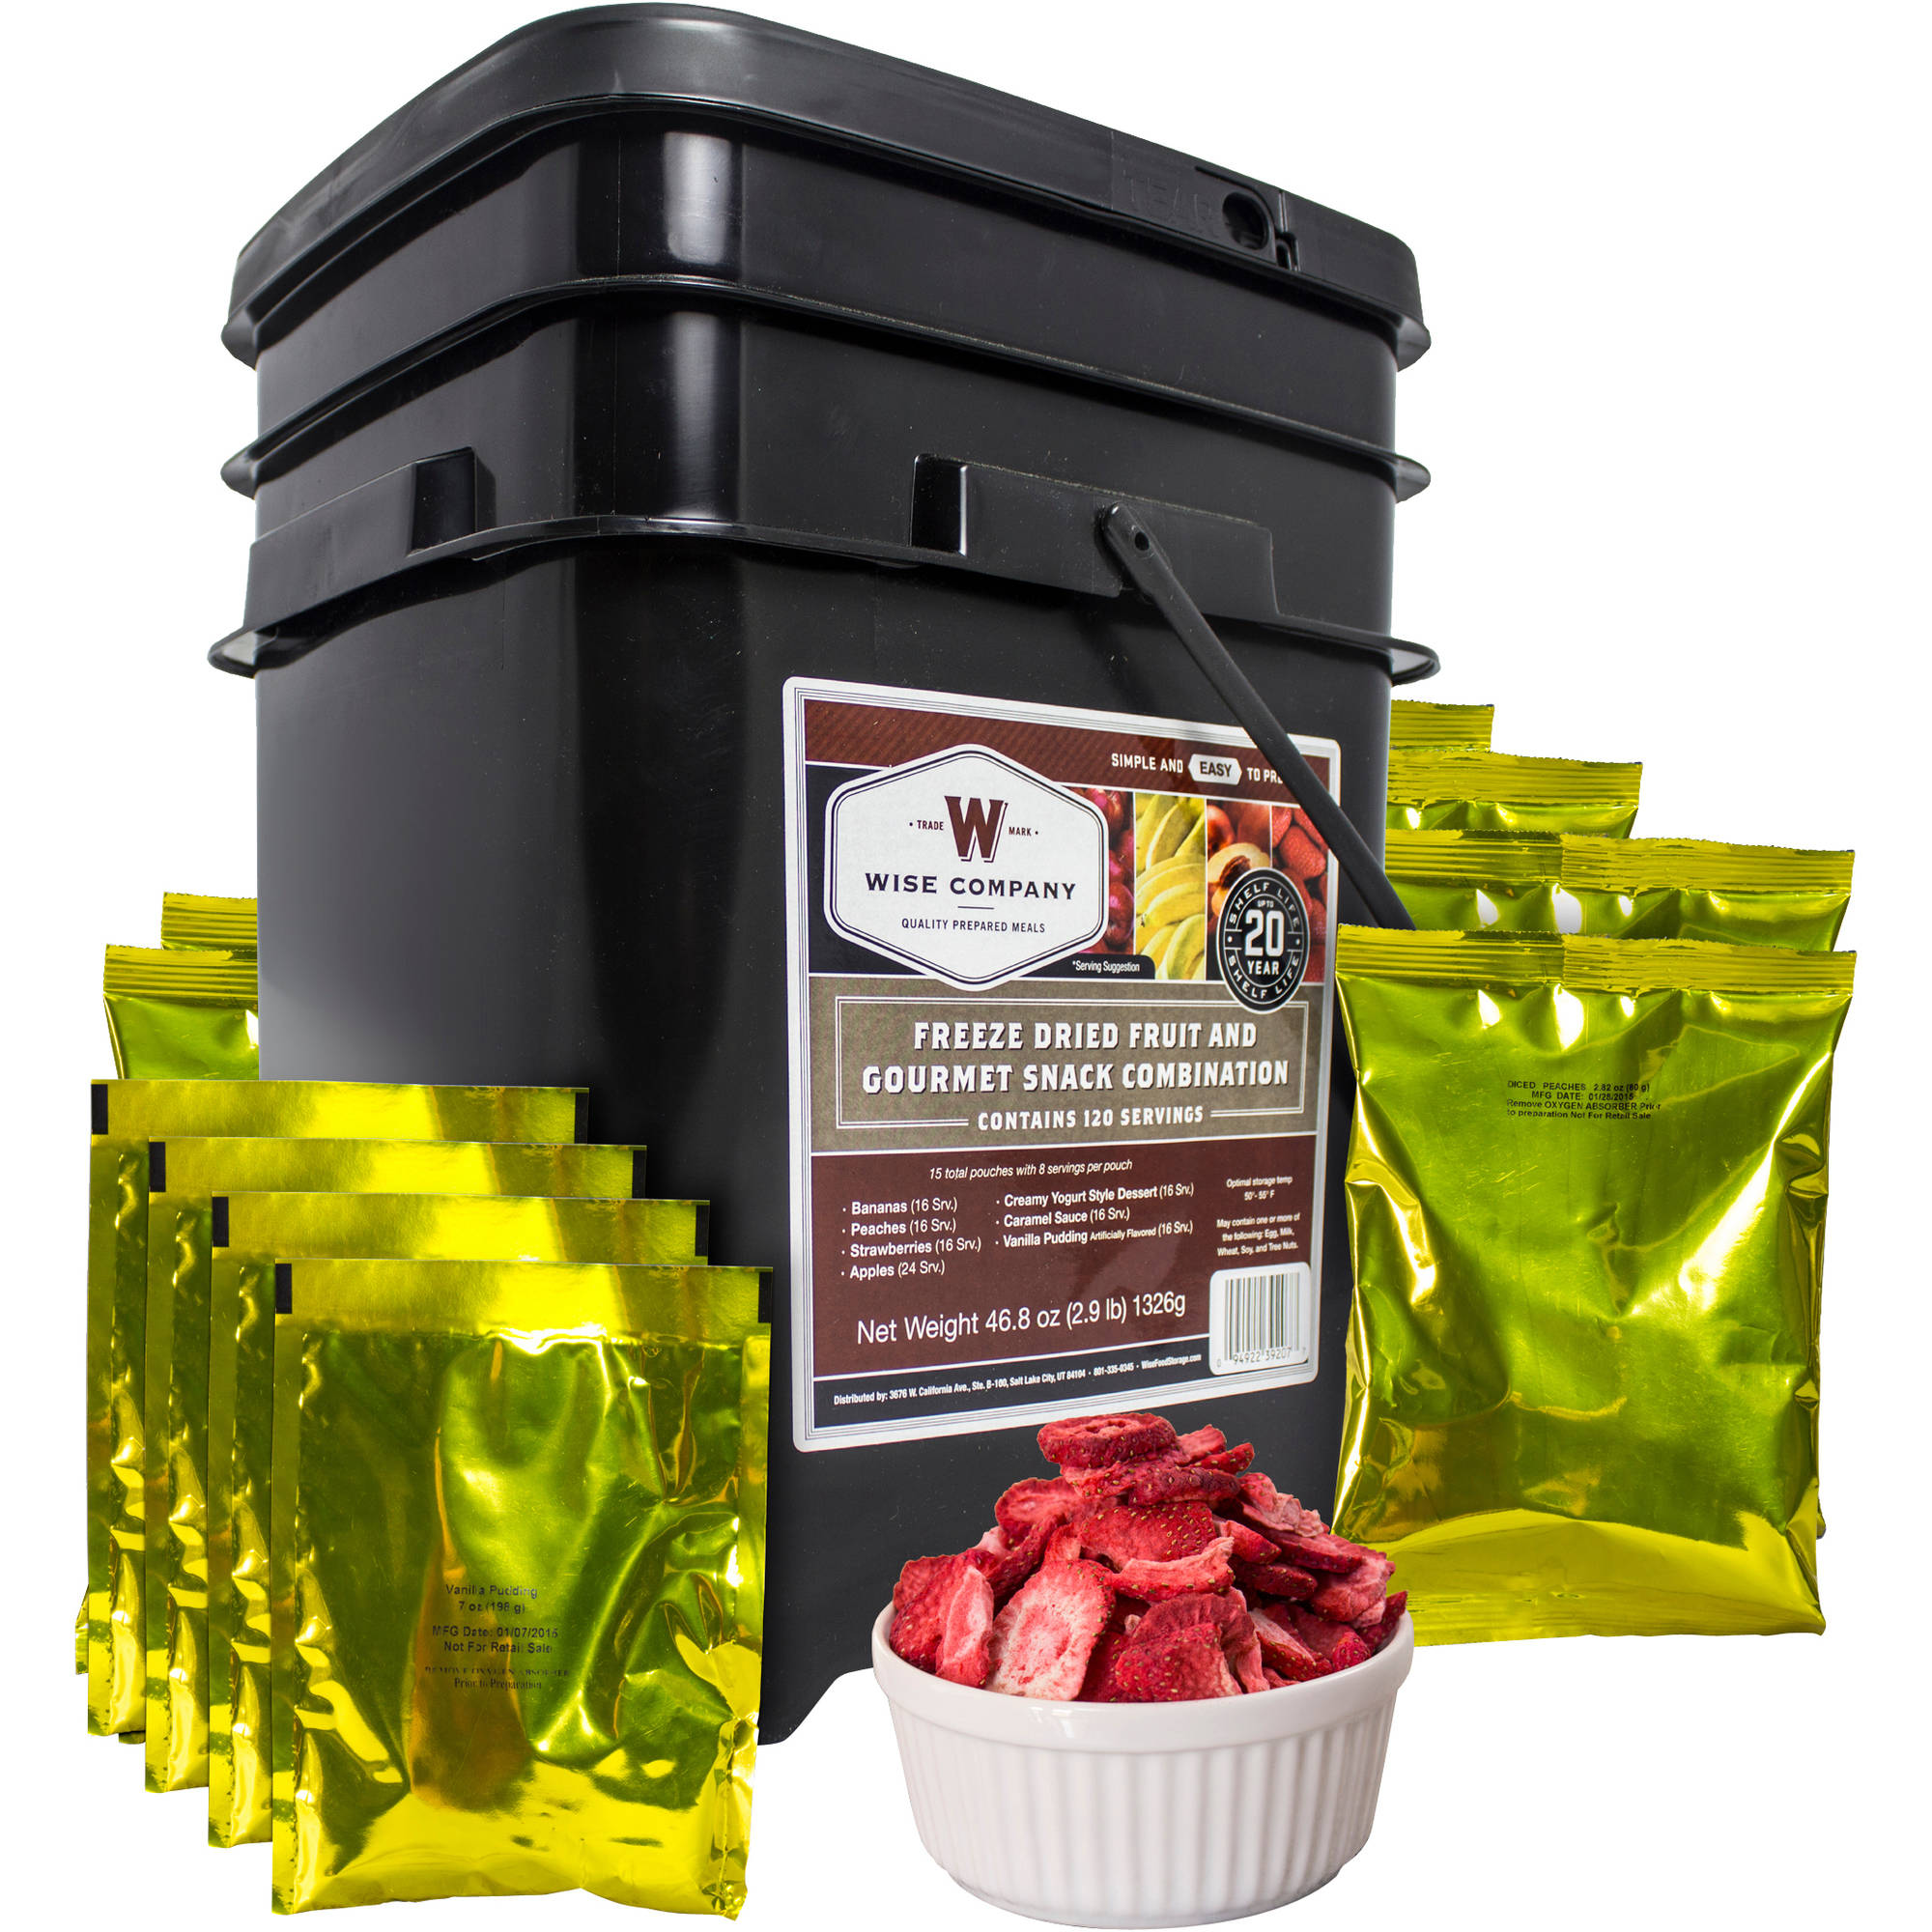 Wise Company Freeze Dried Fruit and Gourmet Snack Combination Food Kit, 120 pc by Wise Company, Inc